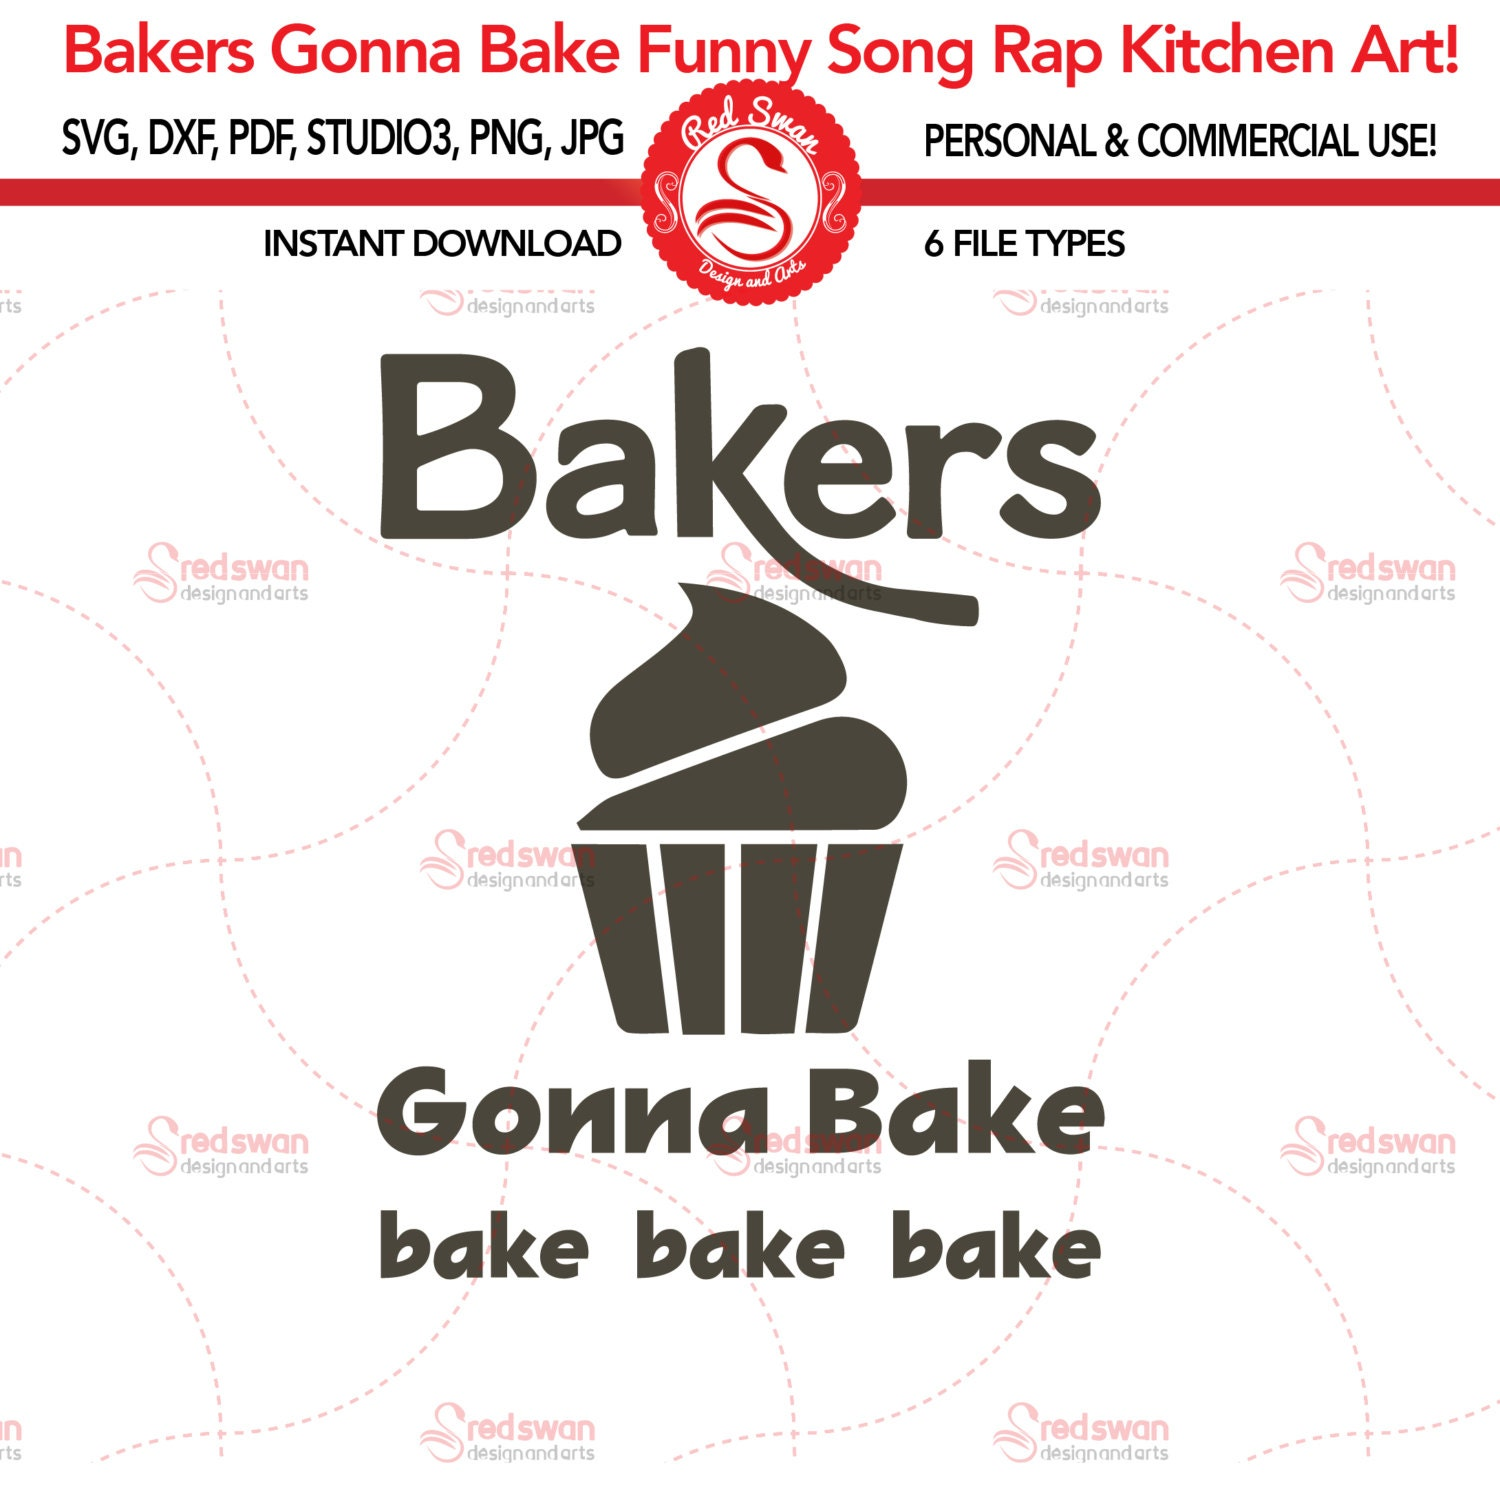 Funny Kitchen Pictures: Bakers Gonna Bake Kitchen SVG, Funny Kitchen Art , Kitchen